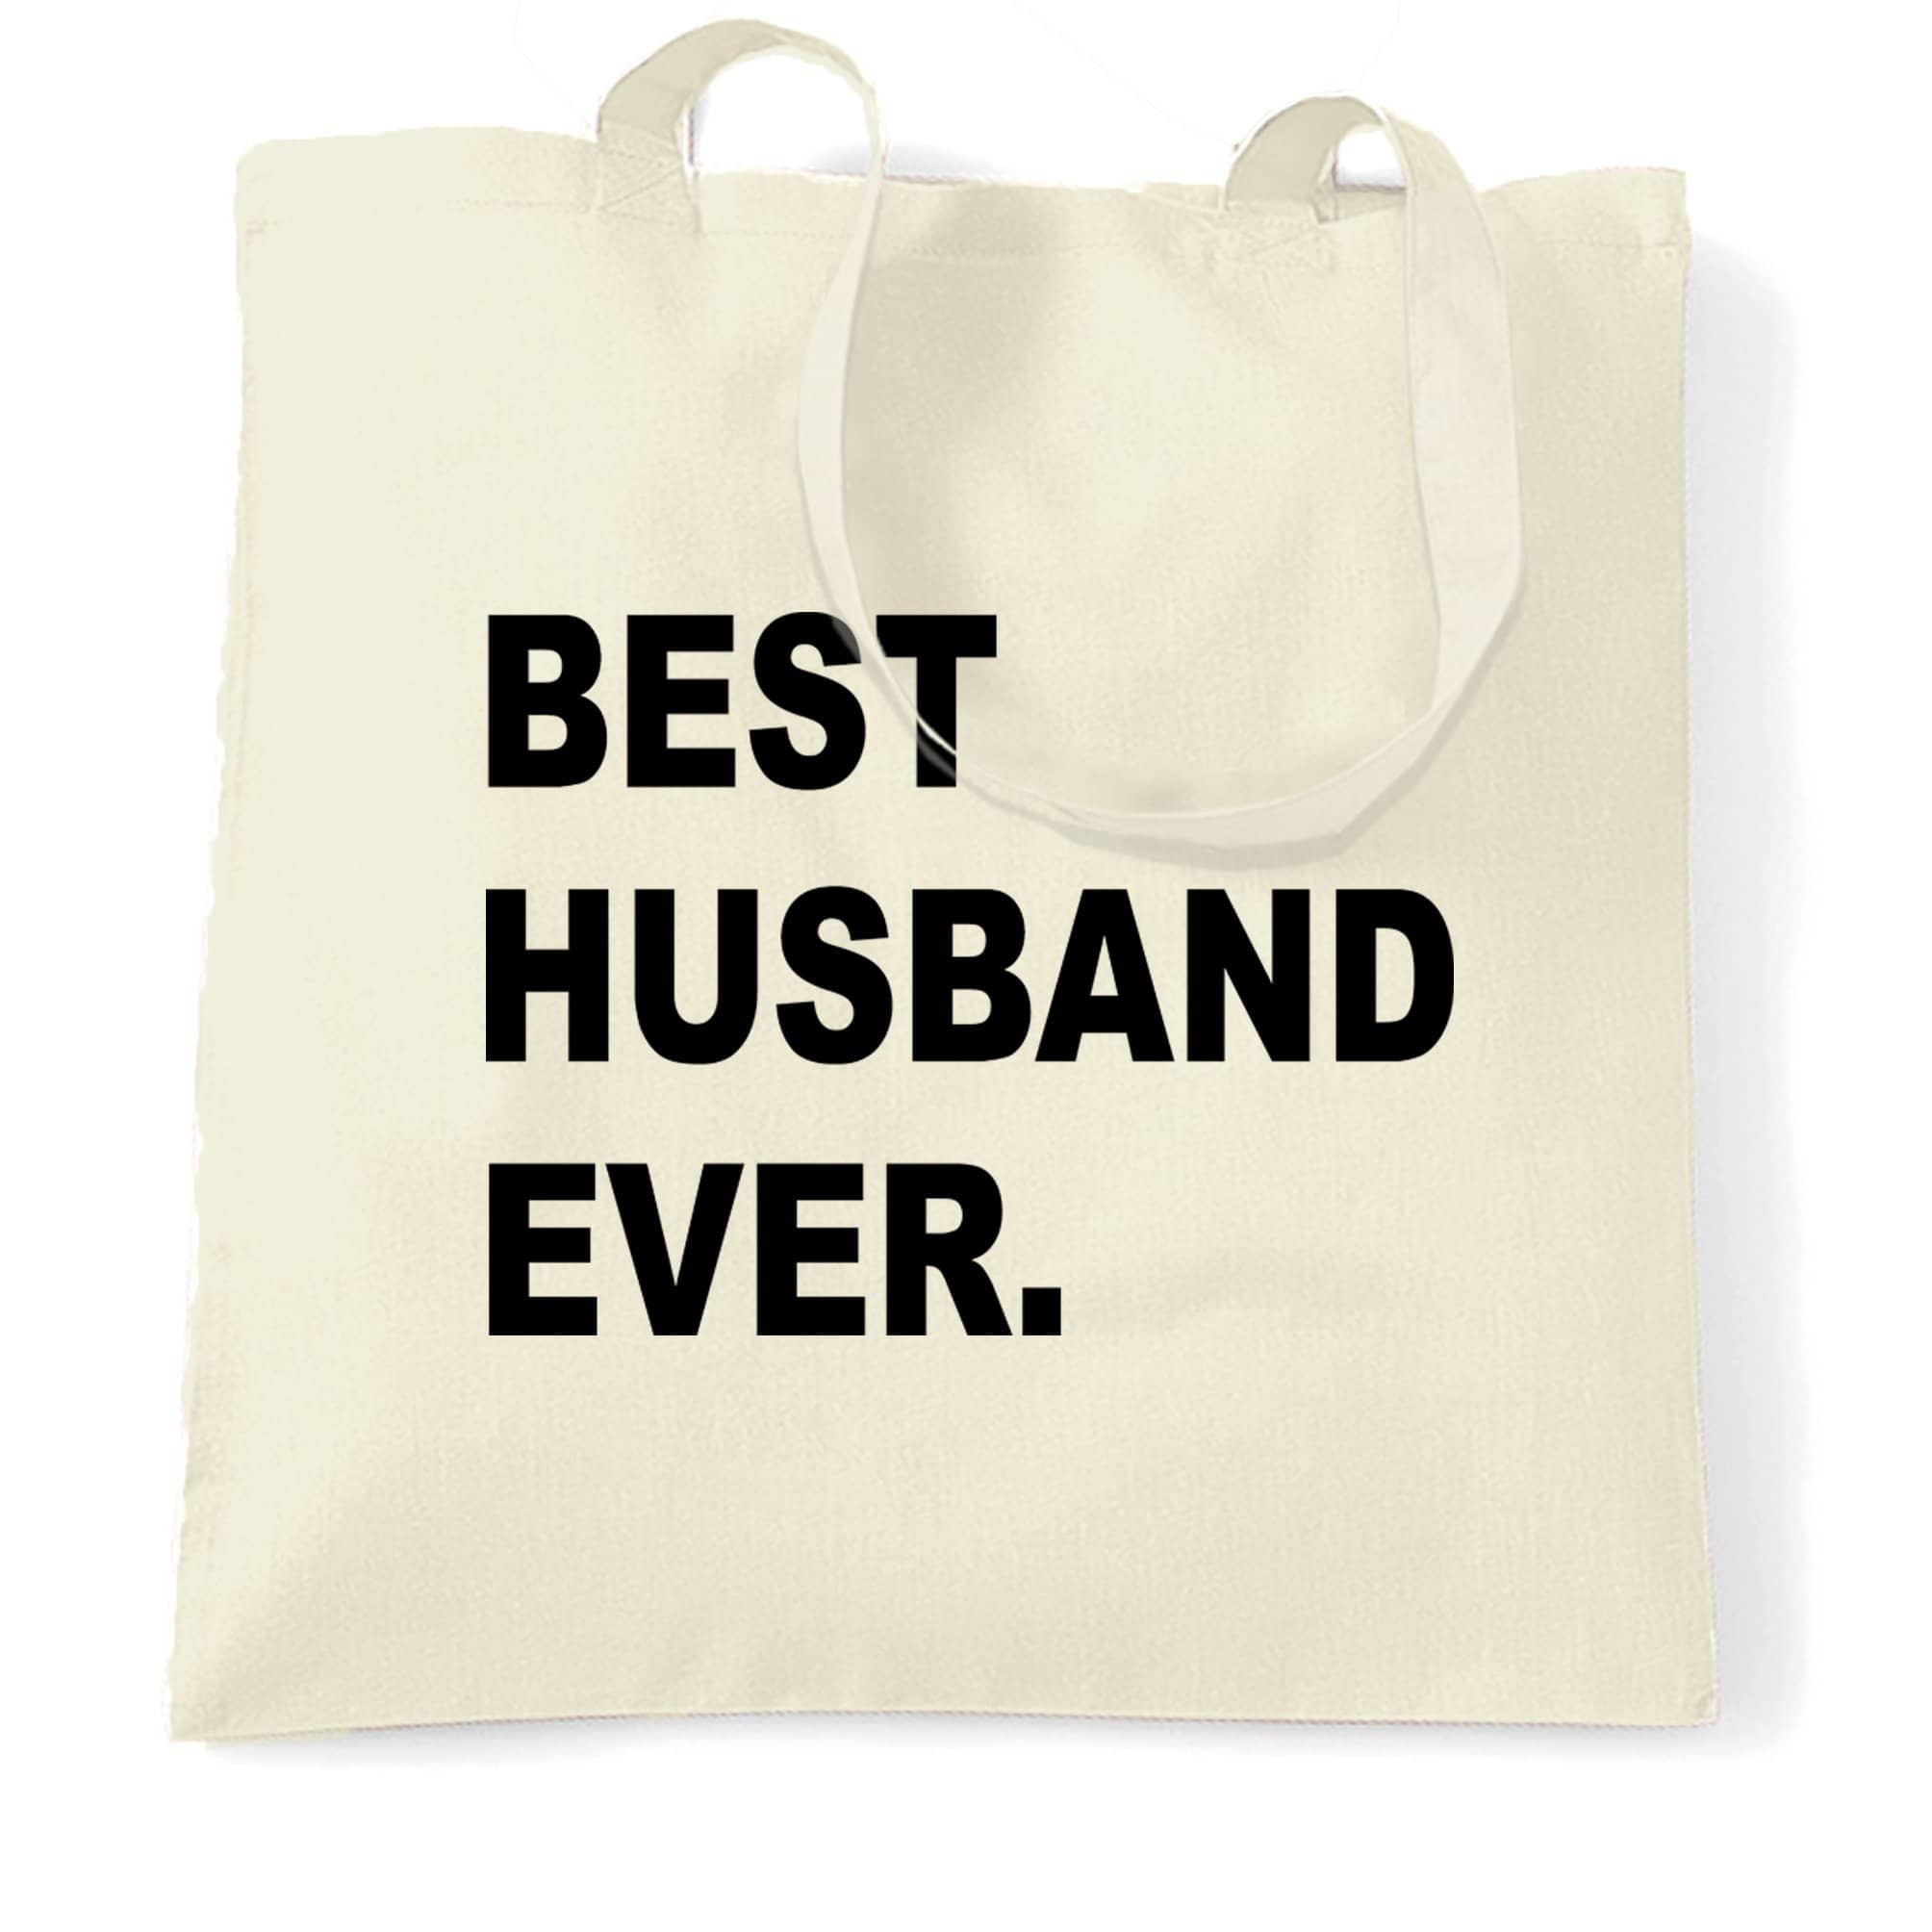 Best Husband Ever Tote Bag Marriage Family Slogan